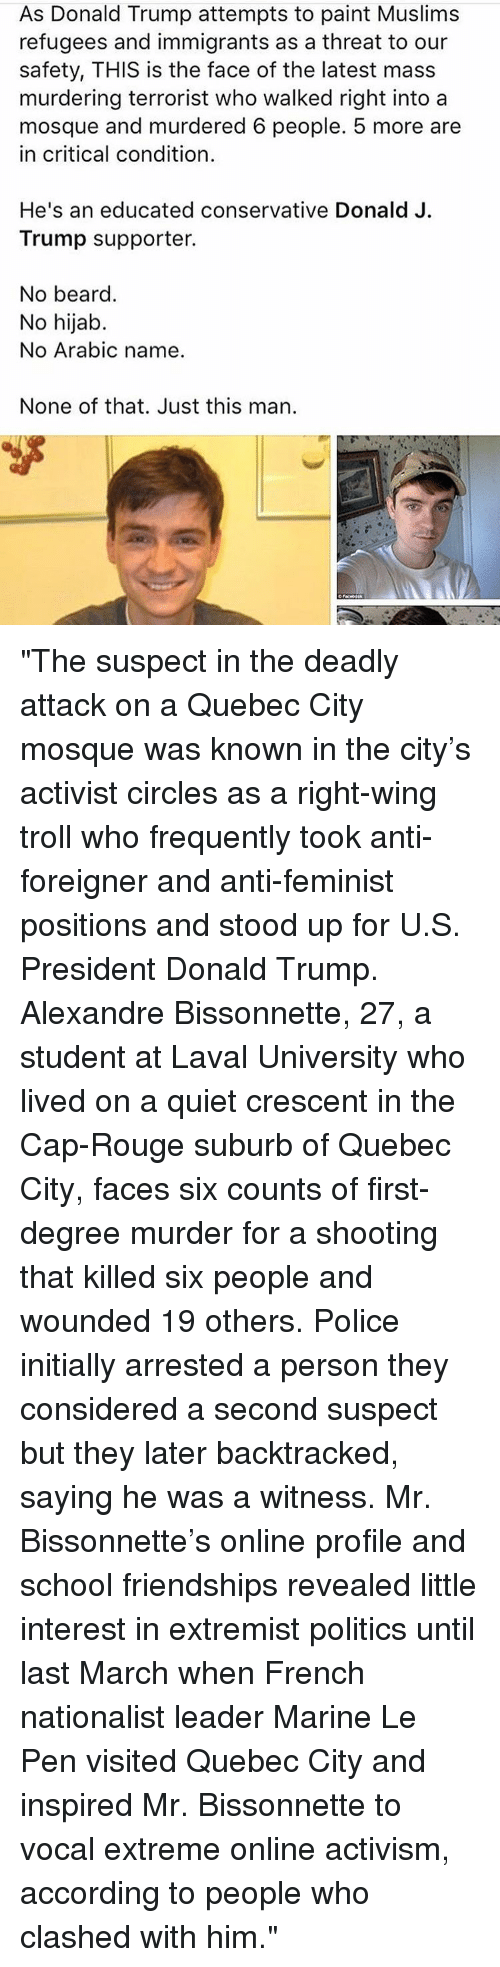 """Initialisms: As Donald Trump attempts to paint Muslims  refugees and immigrants as a threat to our  safety, THIS is the face of the latest mass  murdering terrorist who walked right into a  mosque and murdered 6 people. 5 more are  in critical condition.  He's an educated conservative Donald J.  Trump supporter.  No beard.  No hijab.  No Arabic name.  None of that. Just this man. """"The suspect in the deadly attack on a Quebec City mosque was known in the city's activist circles as a right-wing troll who frequently took anti-foreigner and anti-feminist positions and stood up for U.S. President Donald Trump. Alexandre Bissonnette, 27, a student at Laval University who lived on a quiet crescent in the Cap-Rouge suburb of Quebec City, faces six counts of first-degree murder for a shooting that killed six people and wounded 19 others. Police initially arrested a person they considered a second suspect but they later backtracked, saying he was a witness. Mr. Bissonnette's online profile and school friendships revealed little interest in extremist politics until last March when French nationalist leader Marine Le Pen visited Quebec City and inspired Mr. Bissonnette to vocal extreme online activism, according to people who clashed with him."""""""